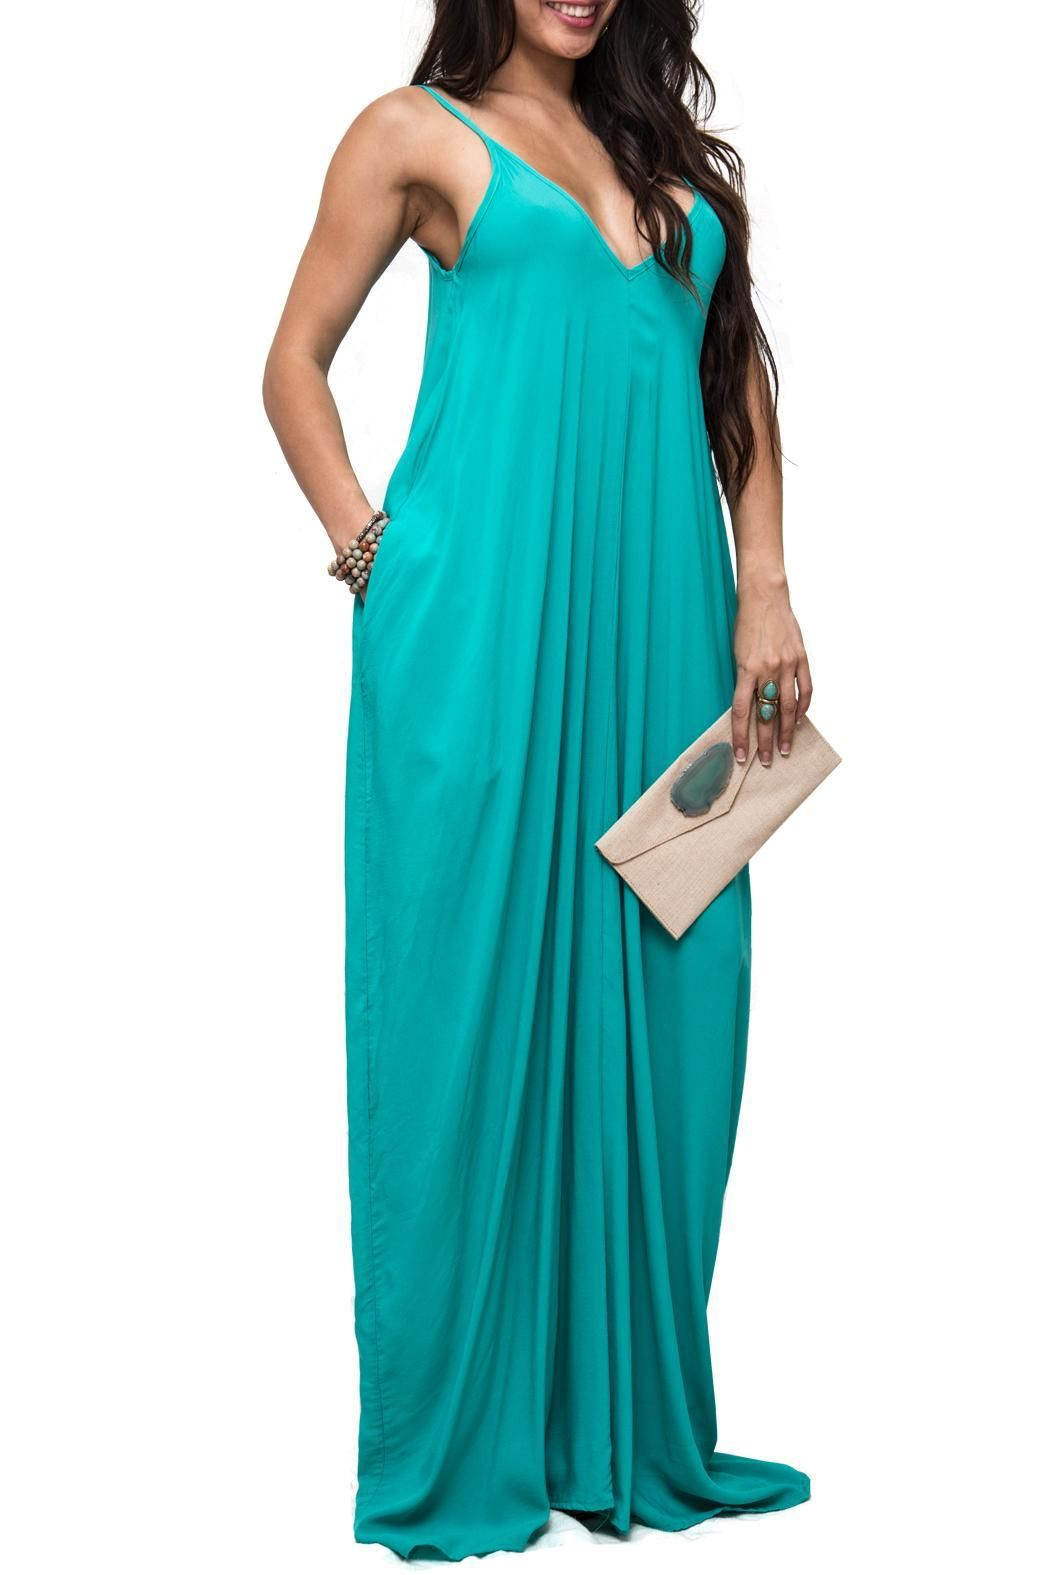 """Gorgeous maxi dress, with spaghetti straps and side pockets. The color is stunning and it simply just flows and compliments the body in all the right places. A definite stunner for the Bohemian chic chick. Whether on a tropical paradise or simply meeting the girls for brunch, this is the """"must have"""" piece.    Spaghetti Strap Maxi by Elan. Clothing - Dresses - Maxi Las Vegas"""